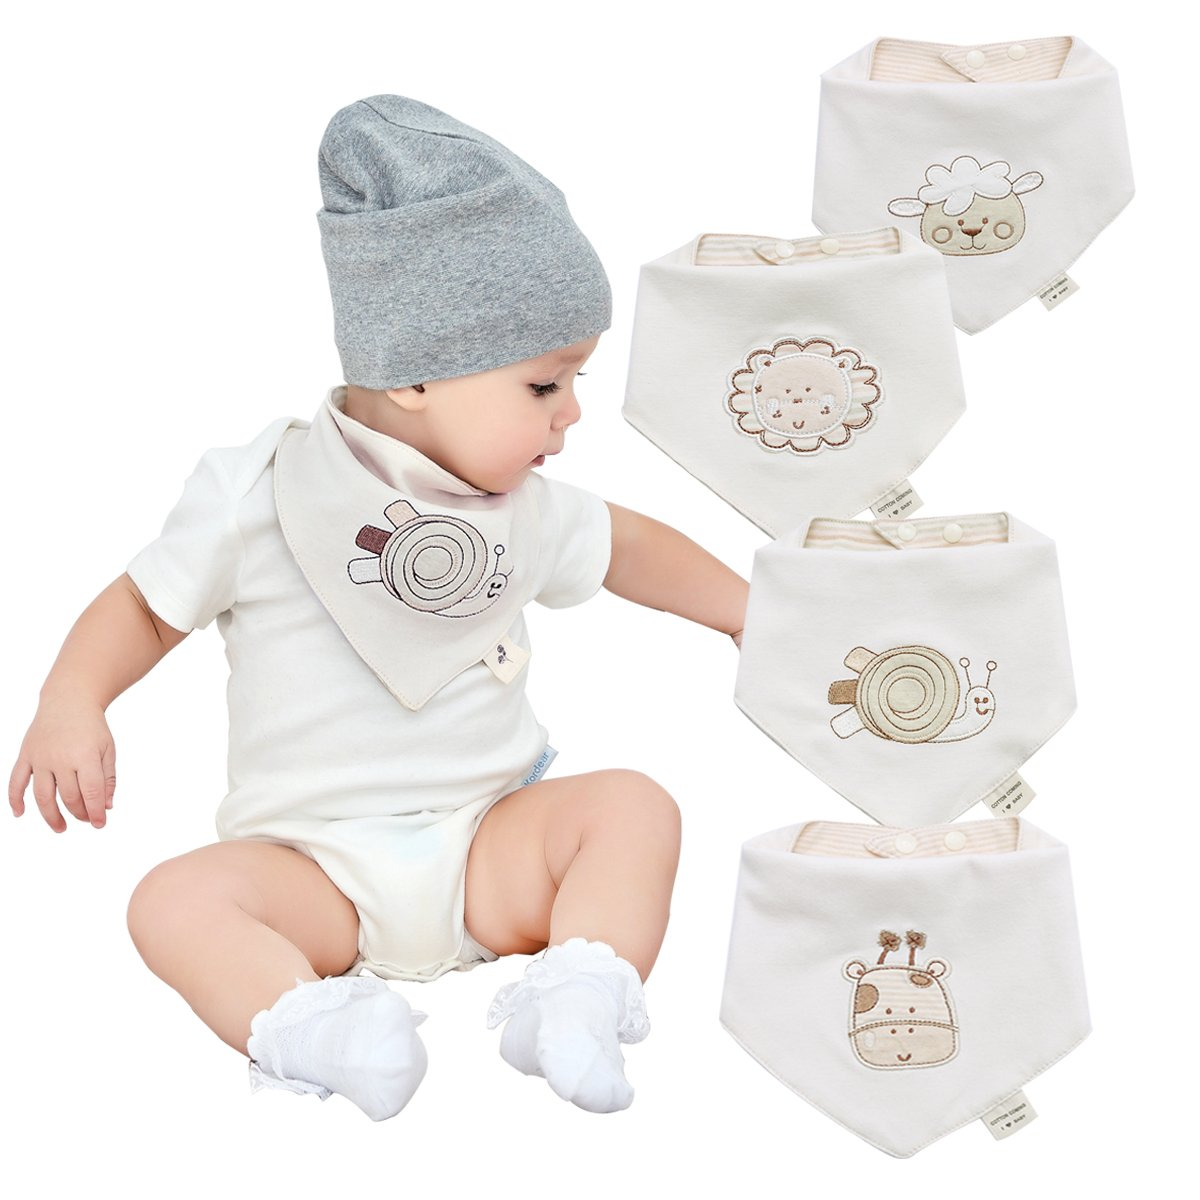 Neutral Organic Baby Bandana Drool Bibs for Boys and Girls 4 Pack